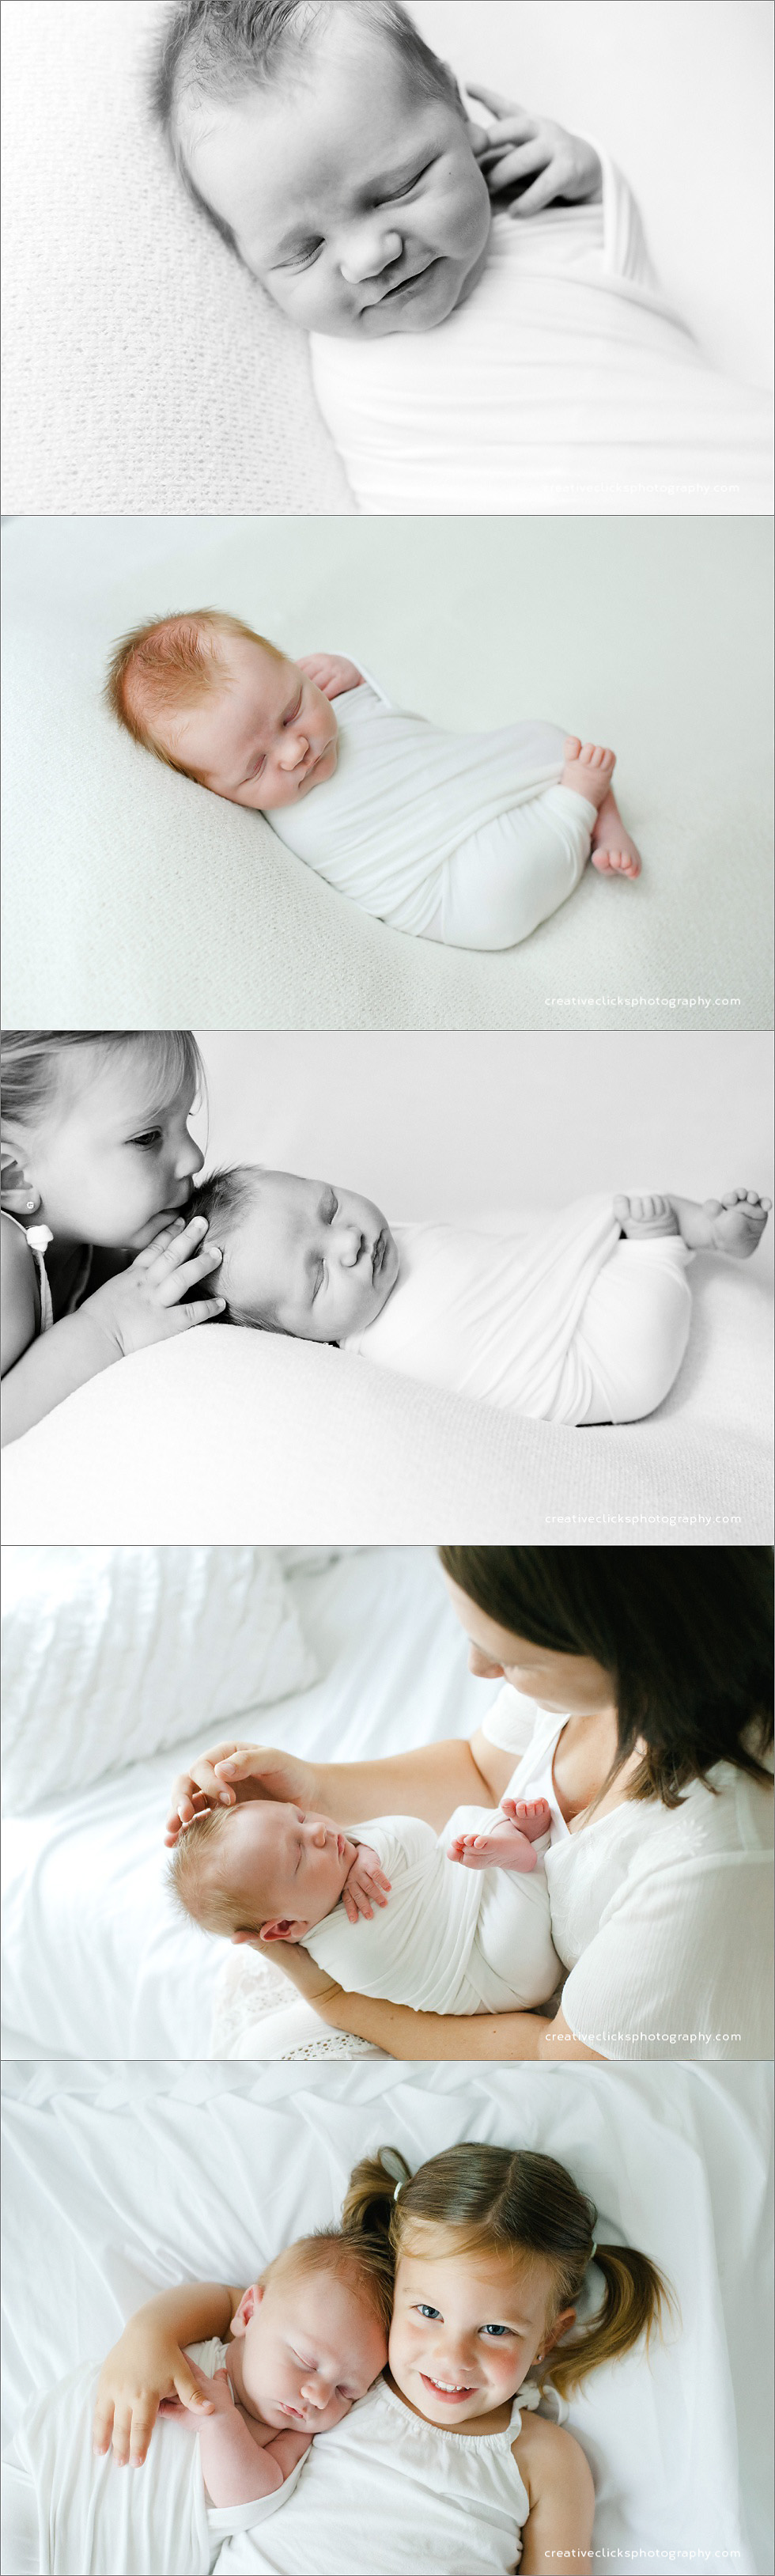 newborn baby and sibling pictures